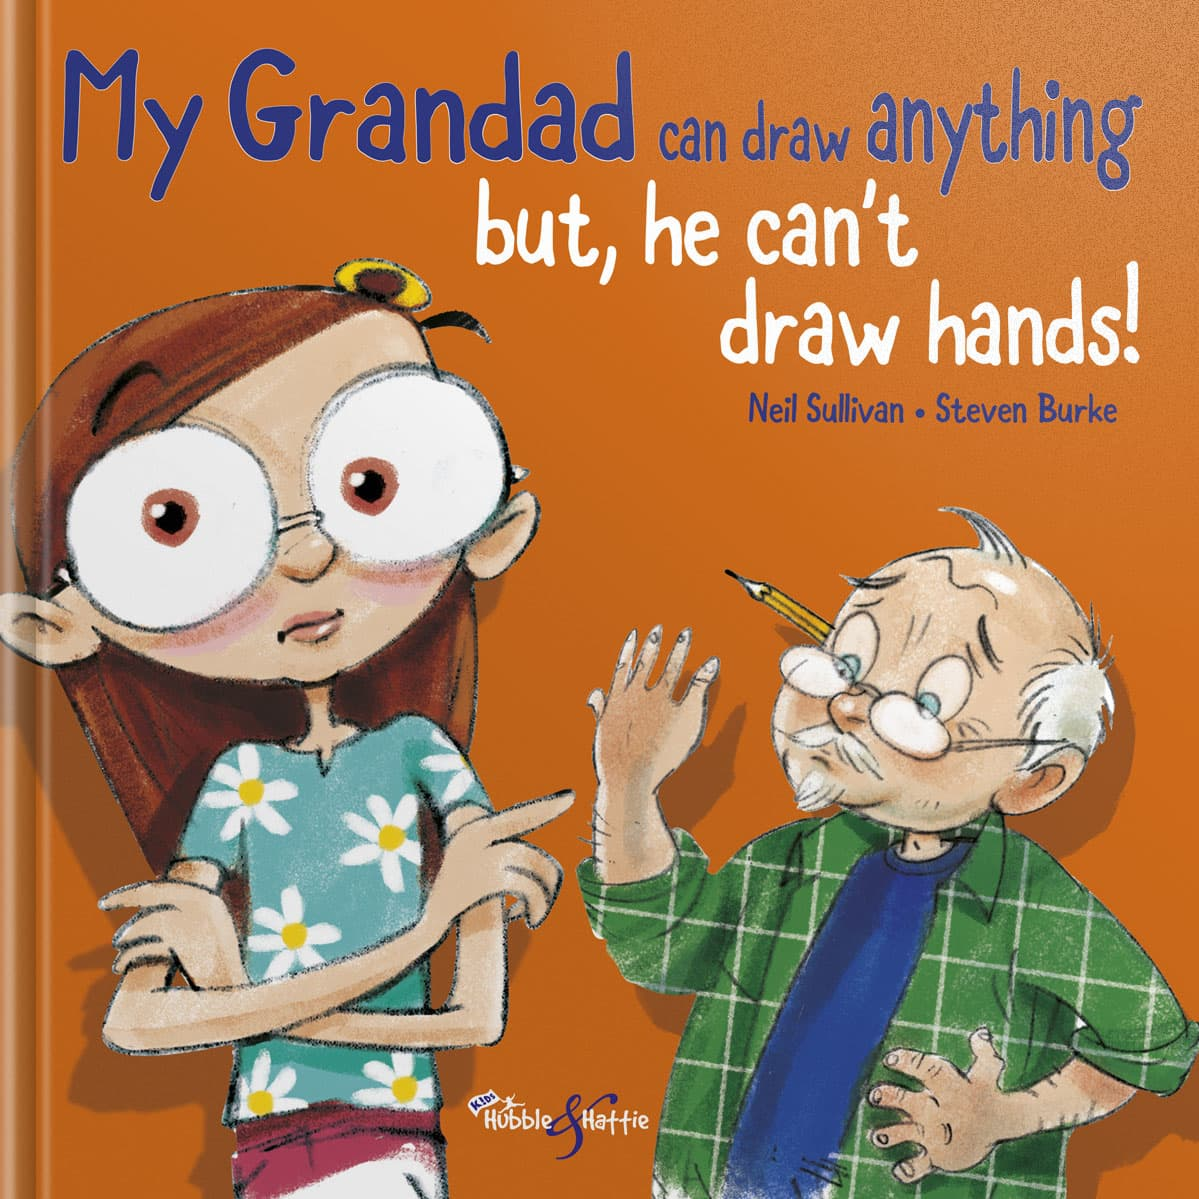 My Grandad can draw anything – BUT he can't draw hands!